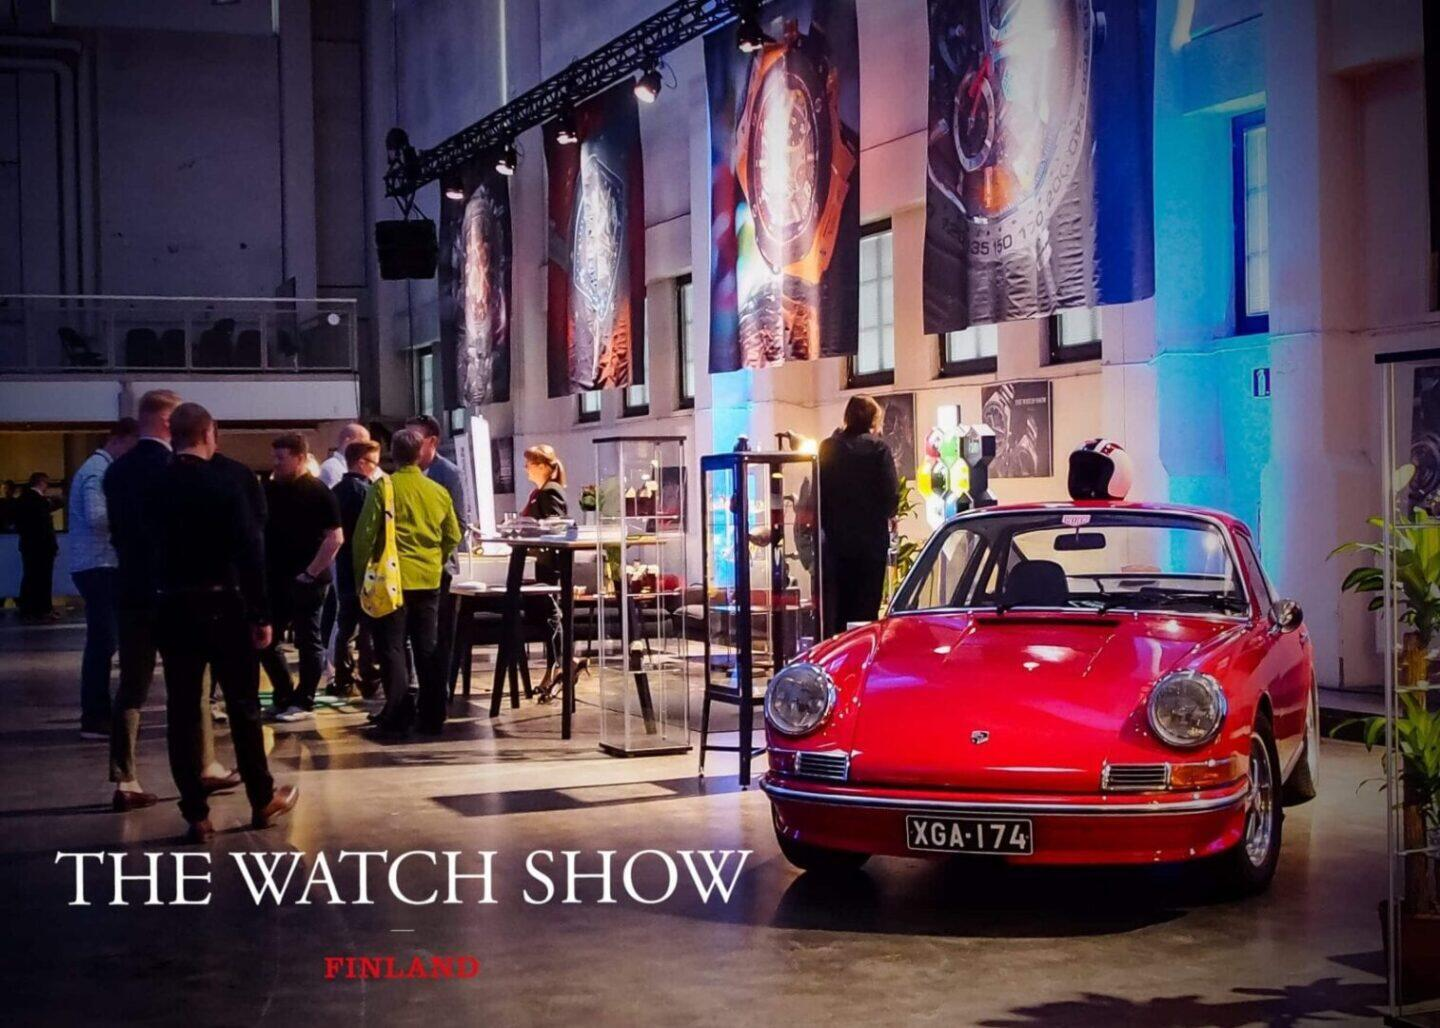 The Watch Show Finland